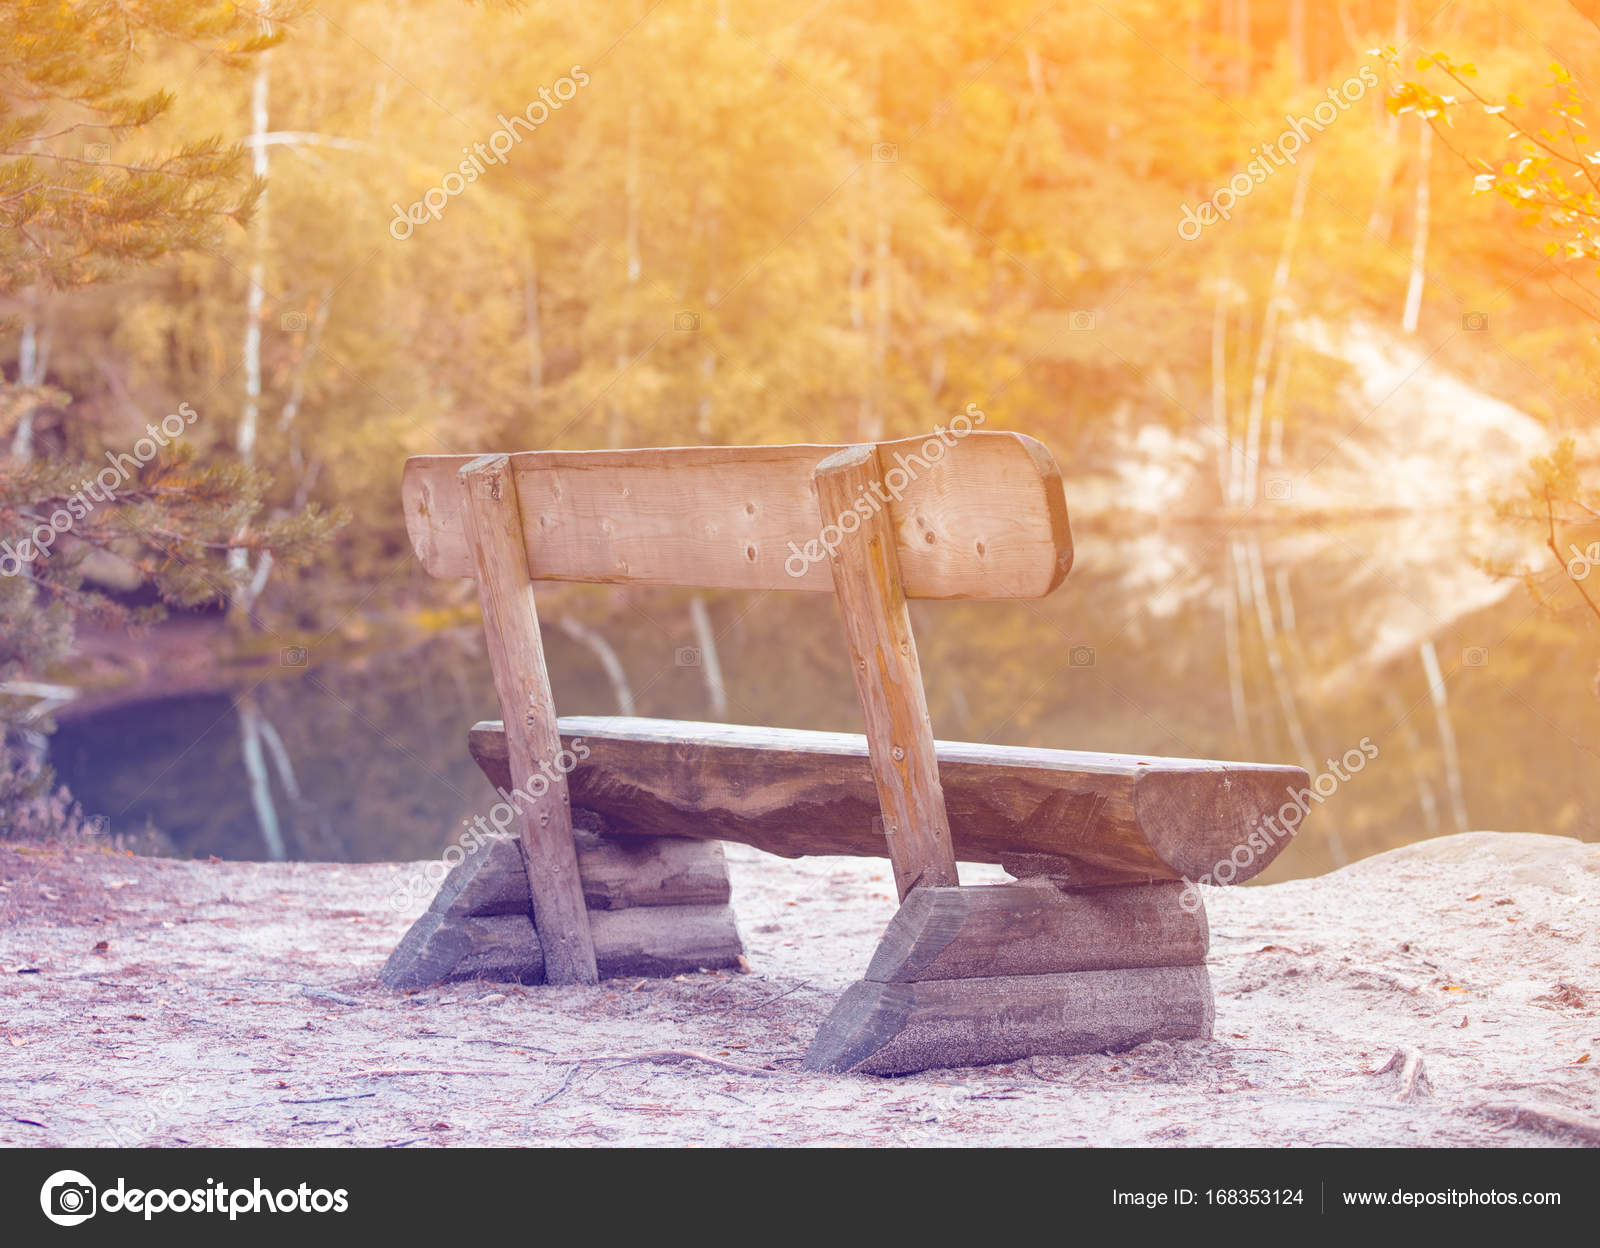 Remarkable Wooden Bench On Lake Stock Photo C Massonforstock 168353124 Machost Co Dining Chair Design Ideas Machostcouk